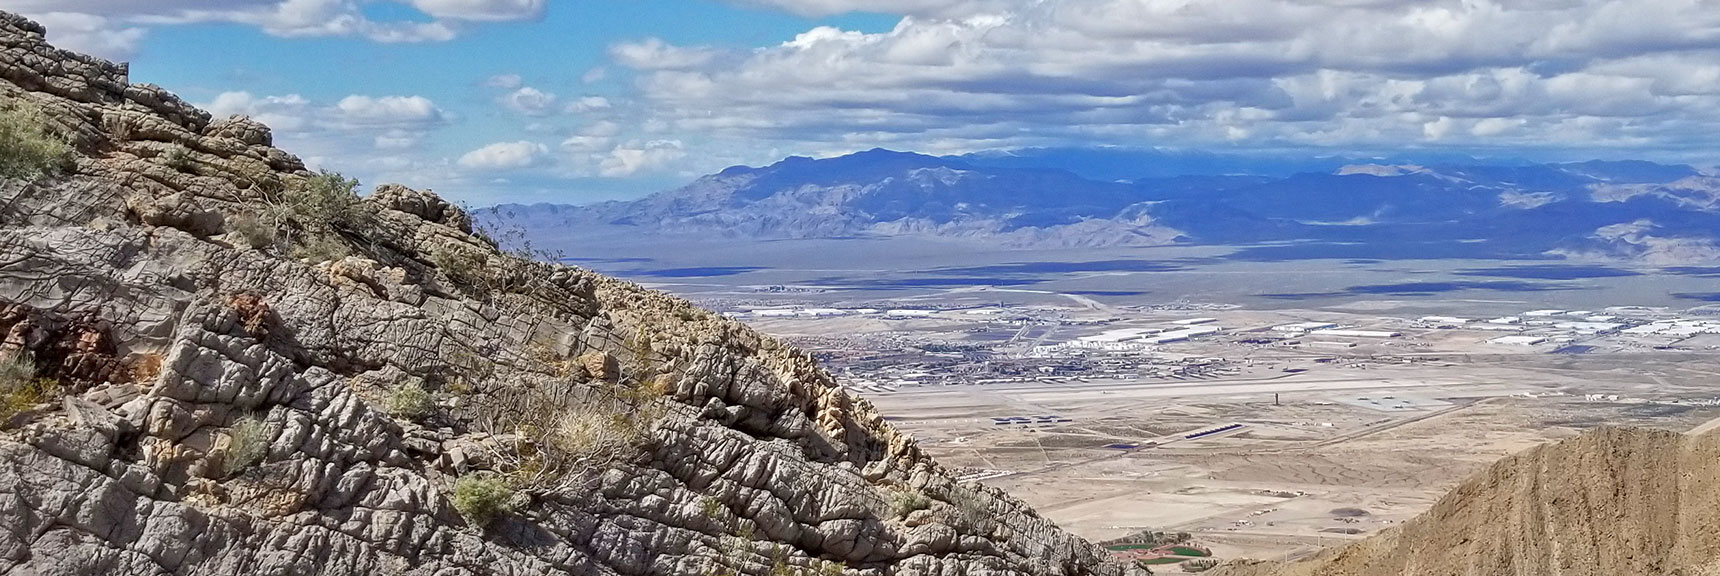 View of Gass Peak from Frenchman Mountain, Nevada